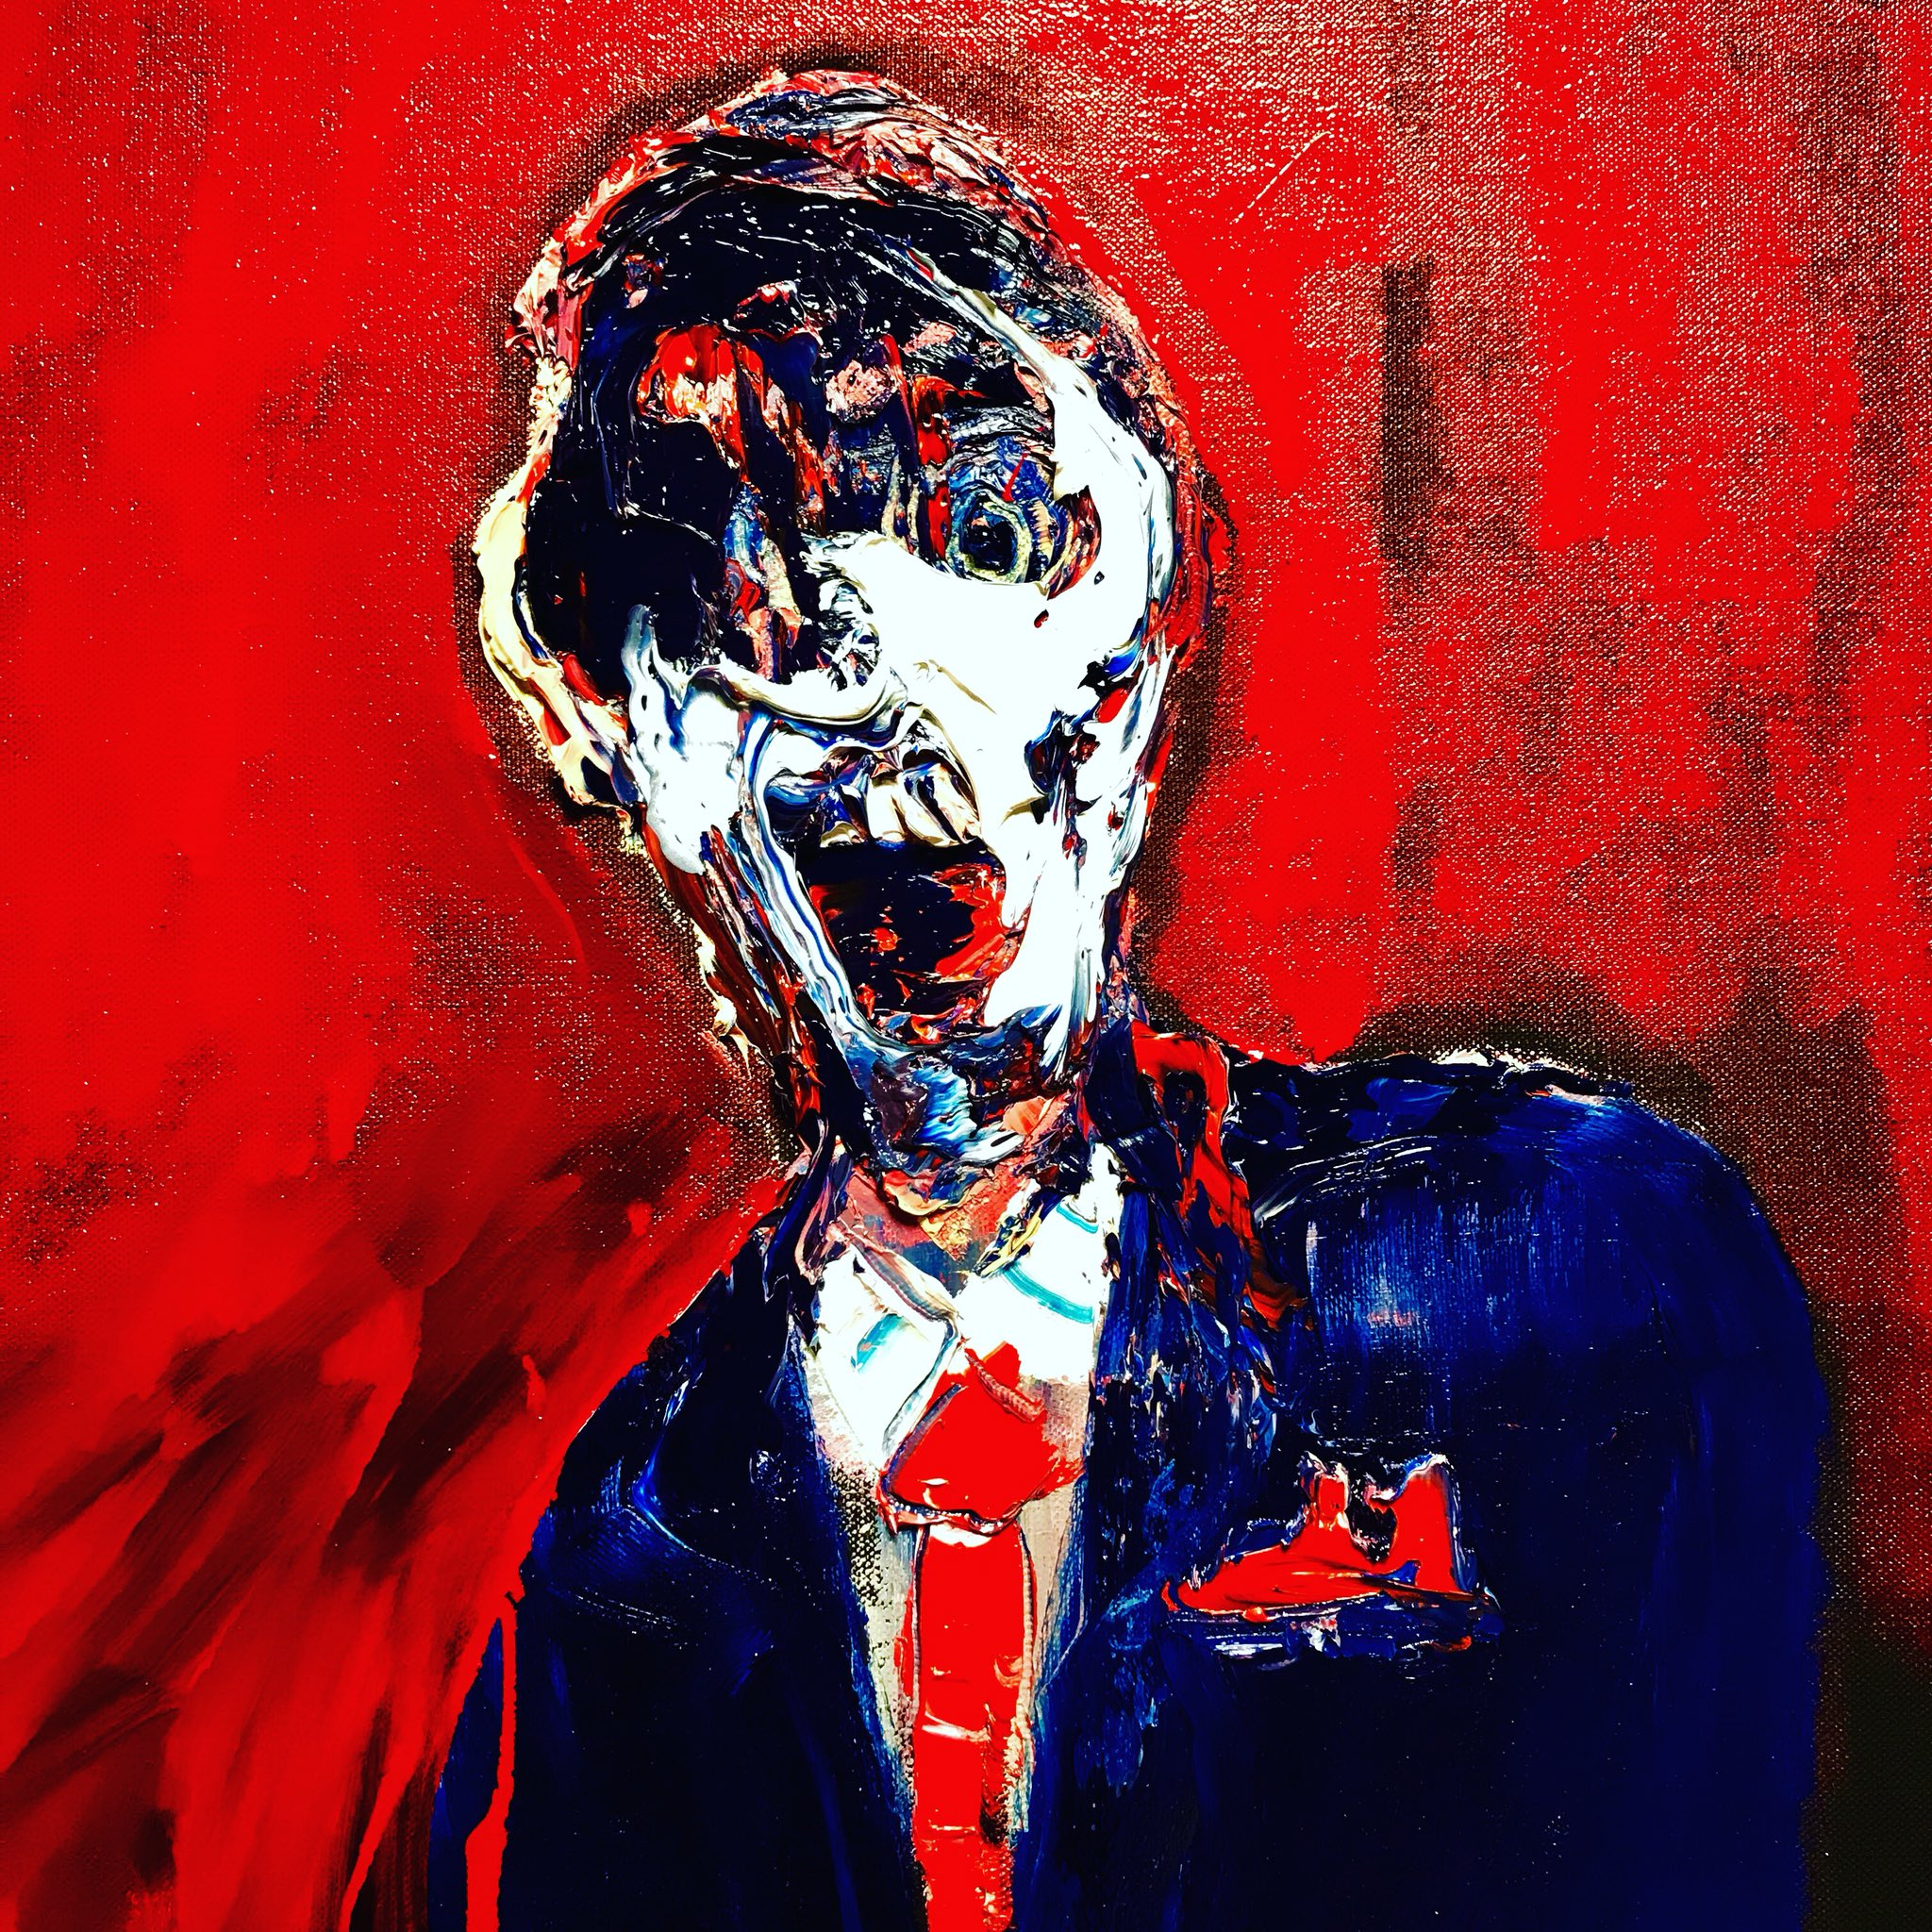 RT @LincolnTownley: The banker only wants one thing....👹 new pieces arriving @MaddoxGallery 2018 https://t.co/Yz6ZTmZRy1